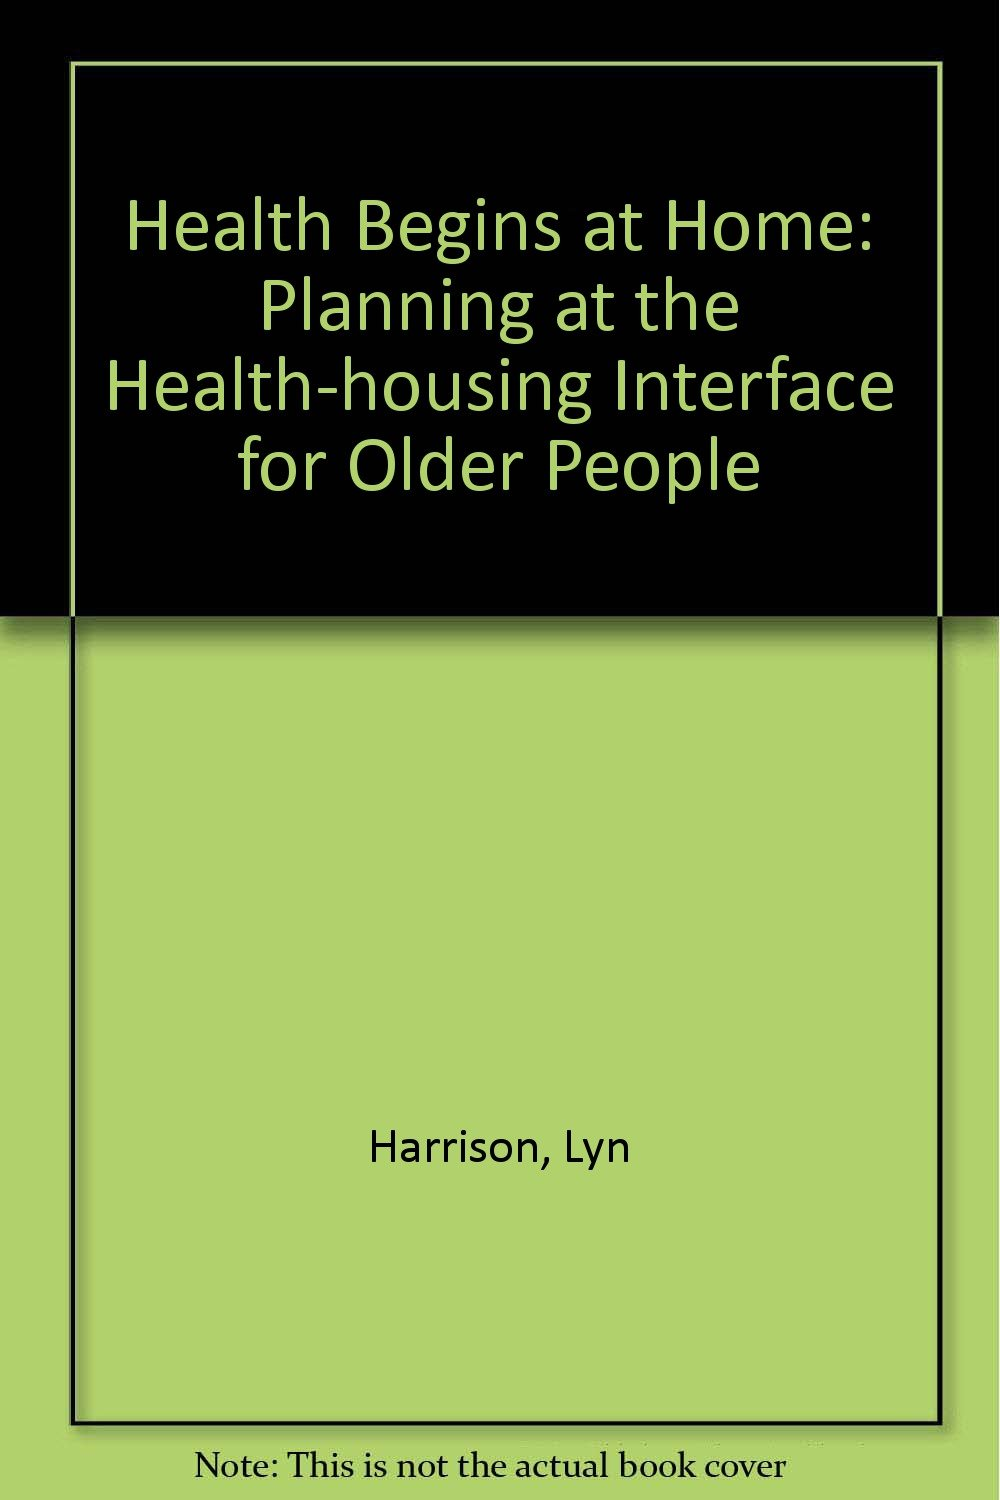 Download Health begins at home: Planning at the health-housing interface for older people pdf epub